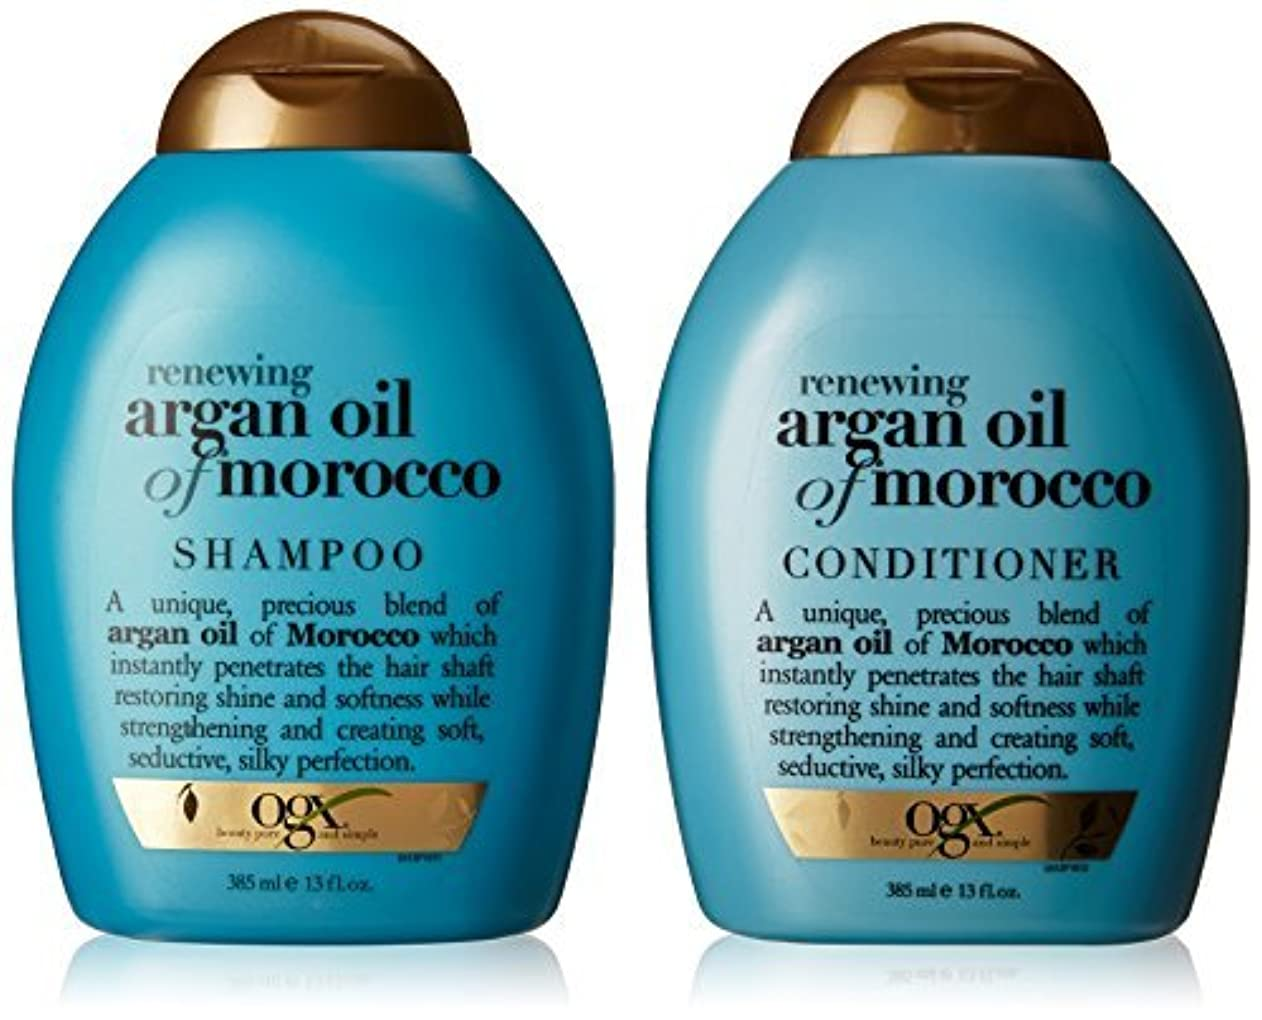 文砂利補正OGX Renewing Argan Oil of Morocco Shampoo & Conditioner (13 fl. Oz.) [並行輸入品]